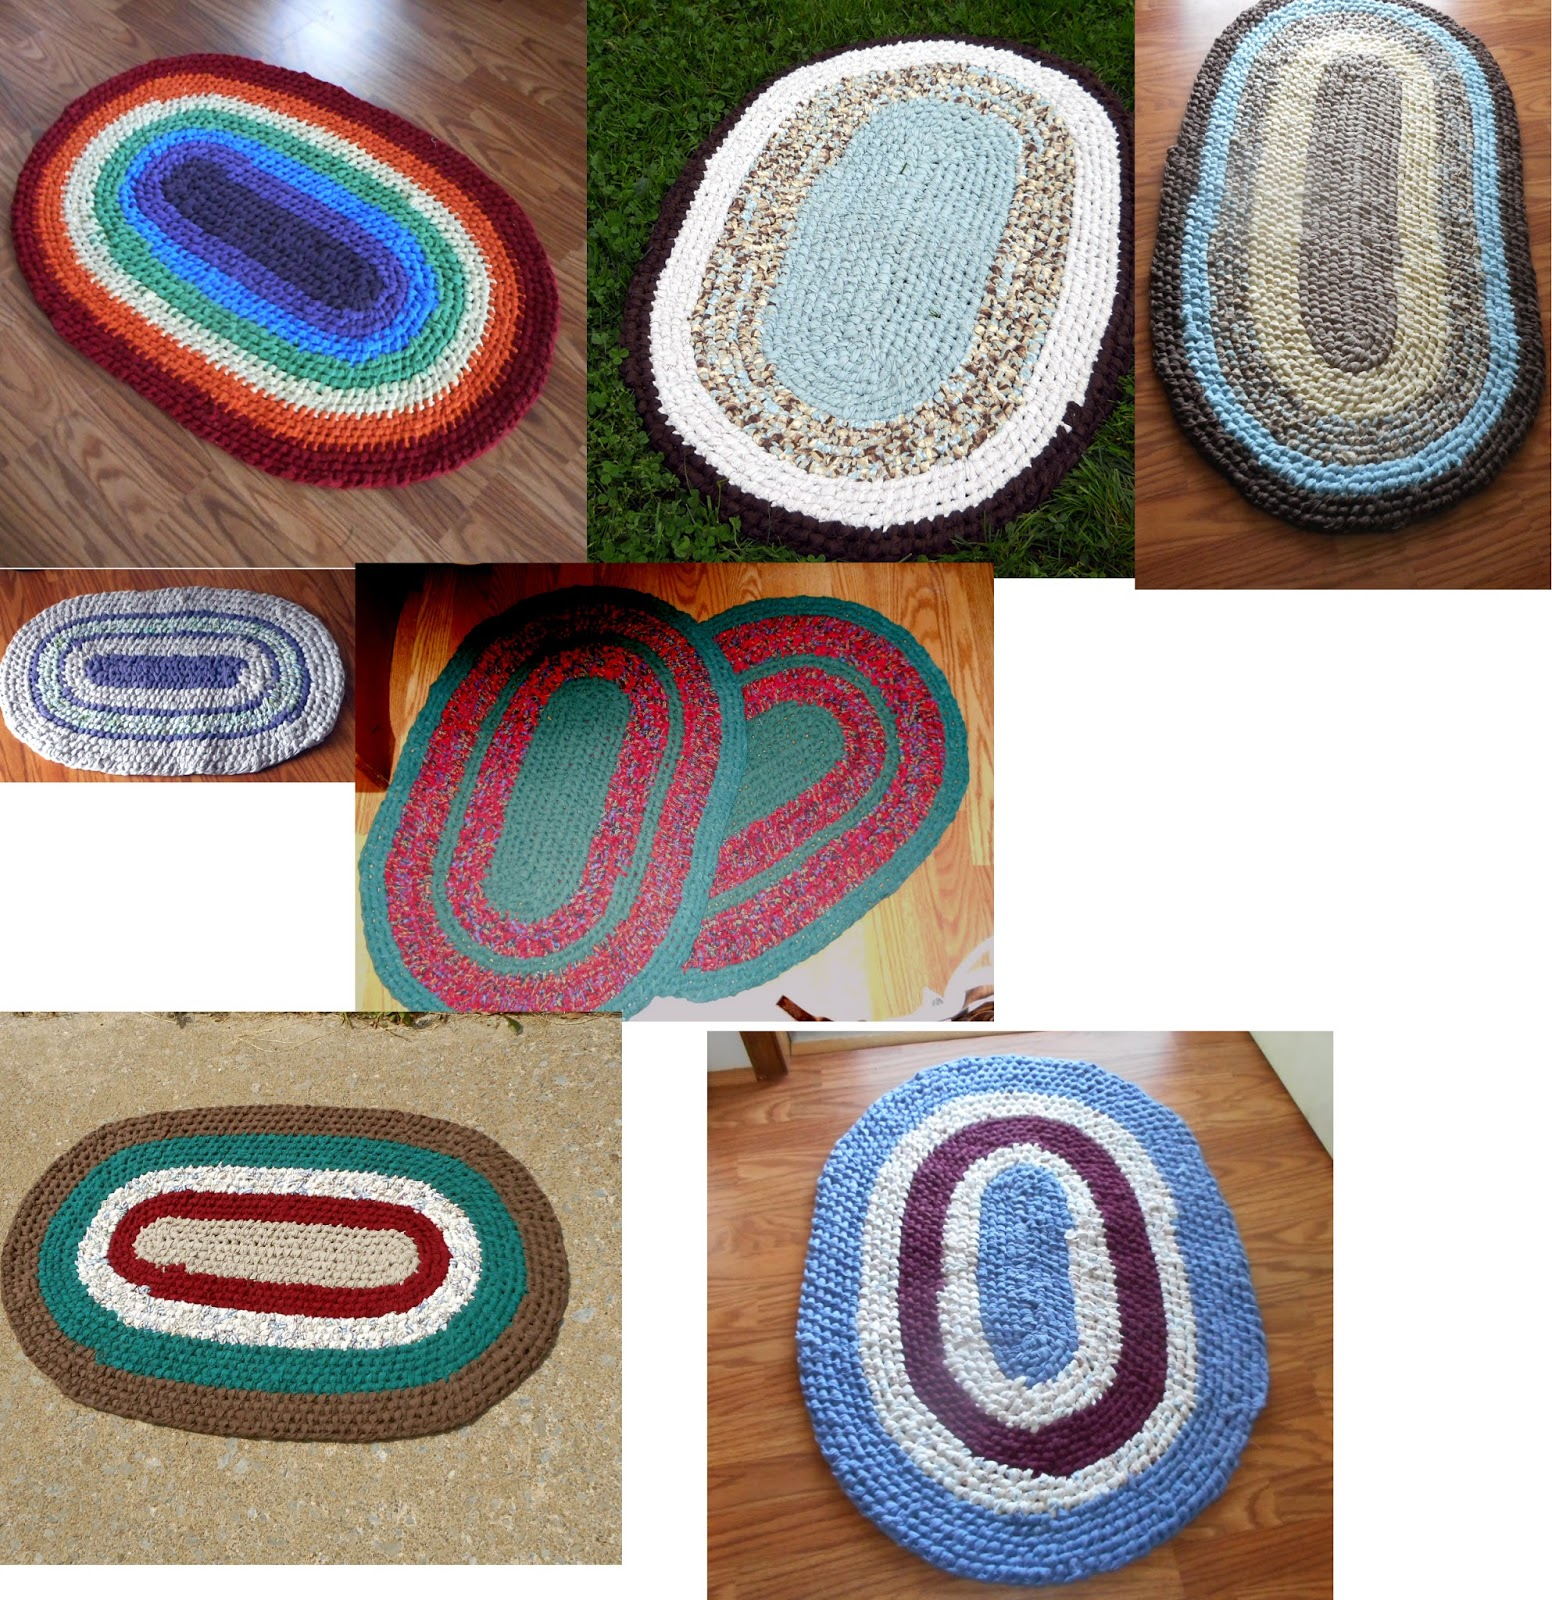 Youtube Toothbrush Rag Rug: Observations